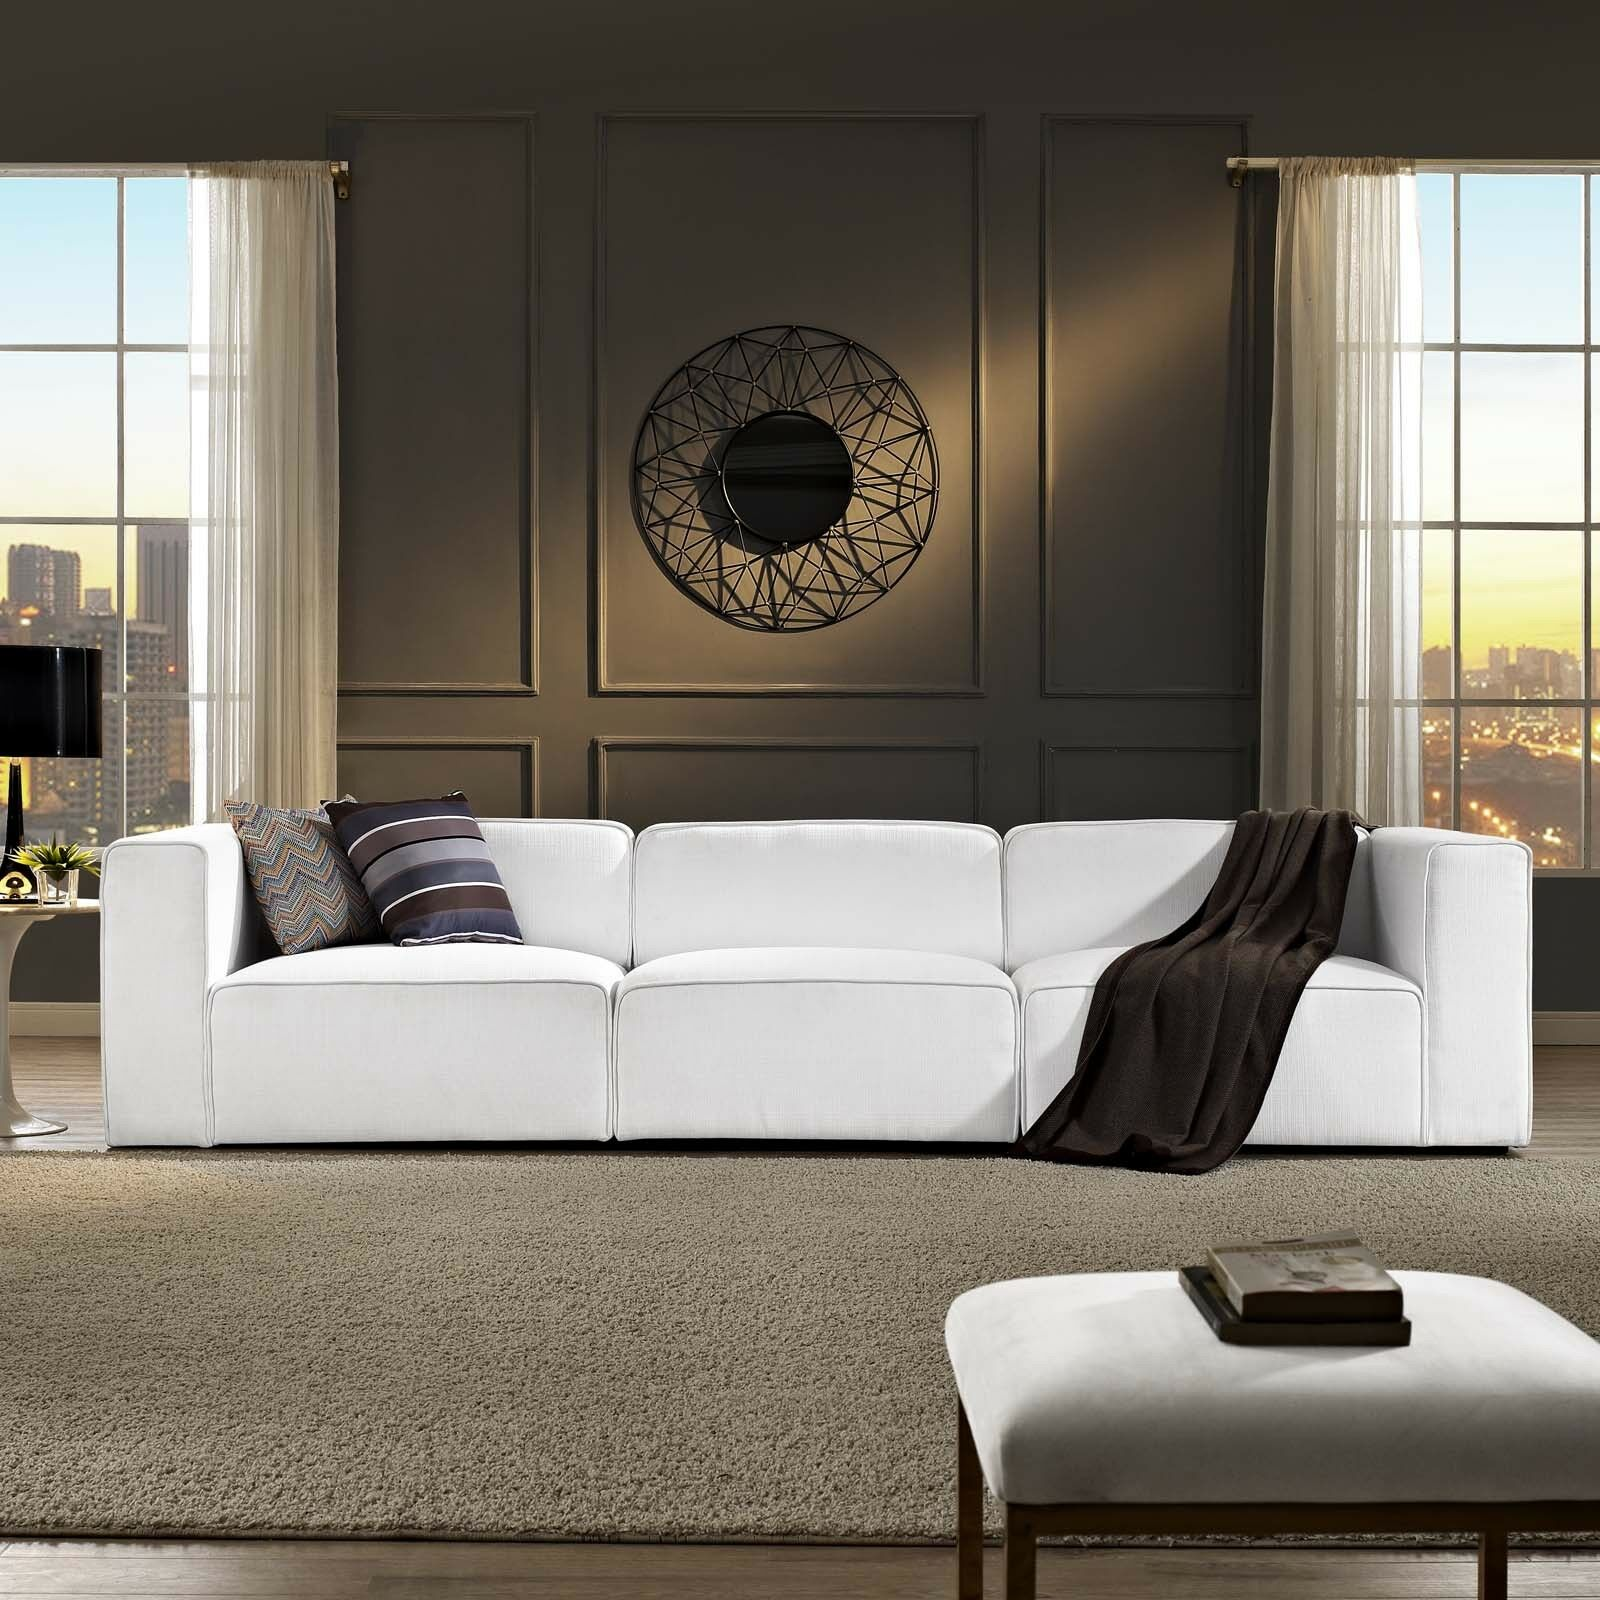 Details about Modway Mingle 3 Piece Upholstered Fabric Sectional Sofa Set  in White